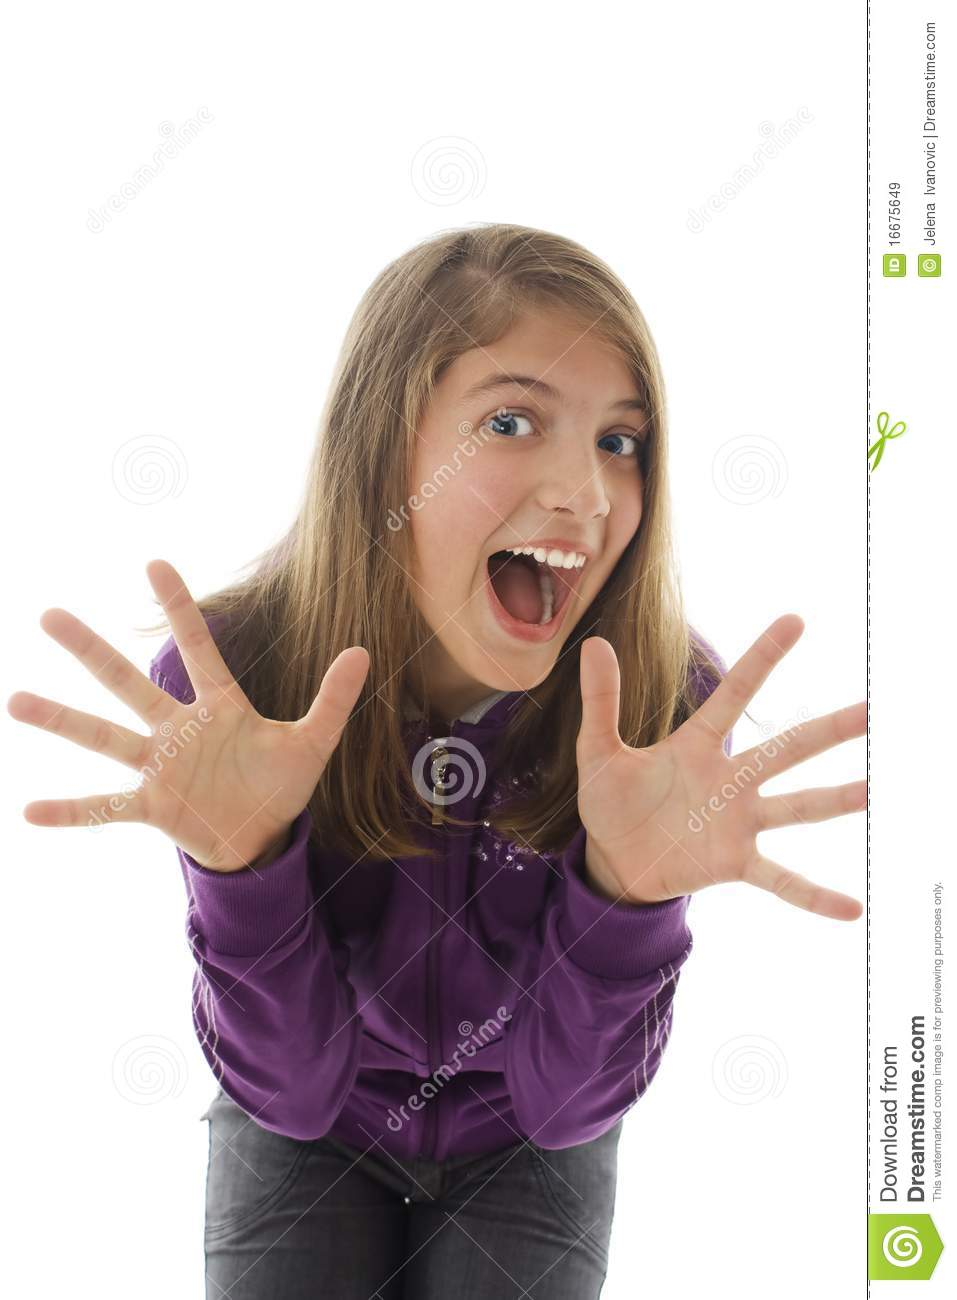 Teen girl with hands up portrait royalty free stock images Tiny girl teen